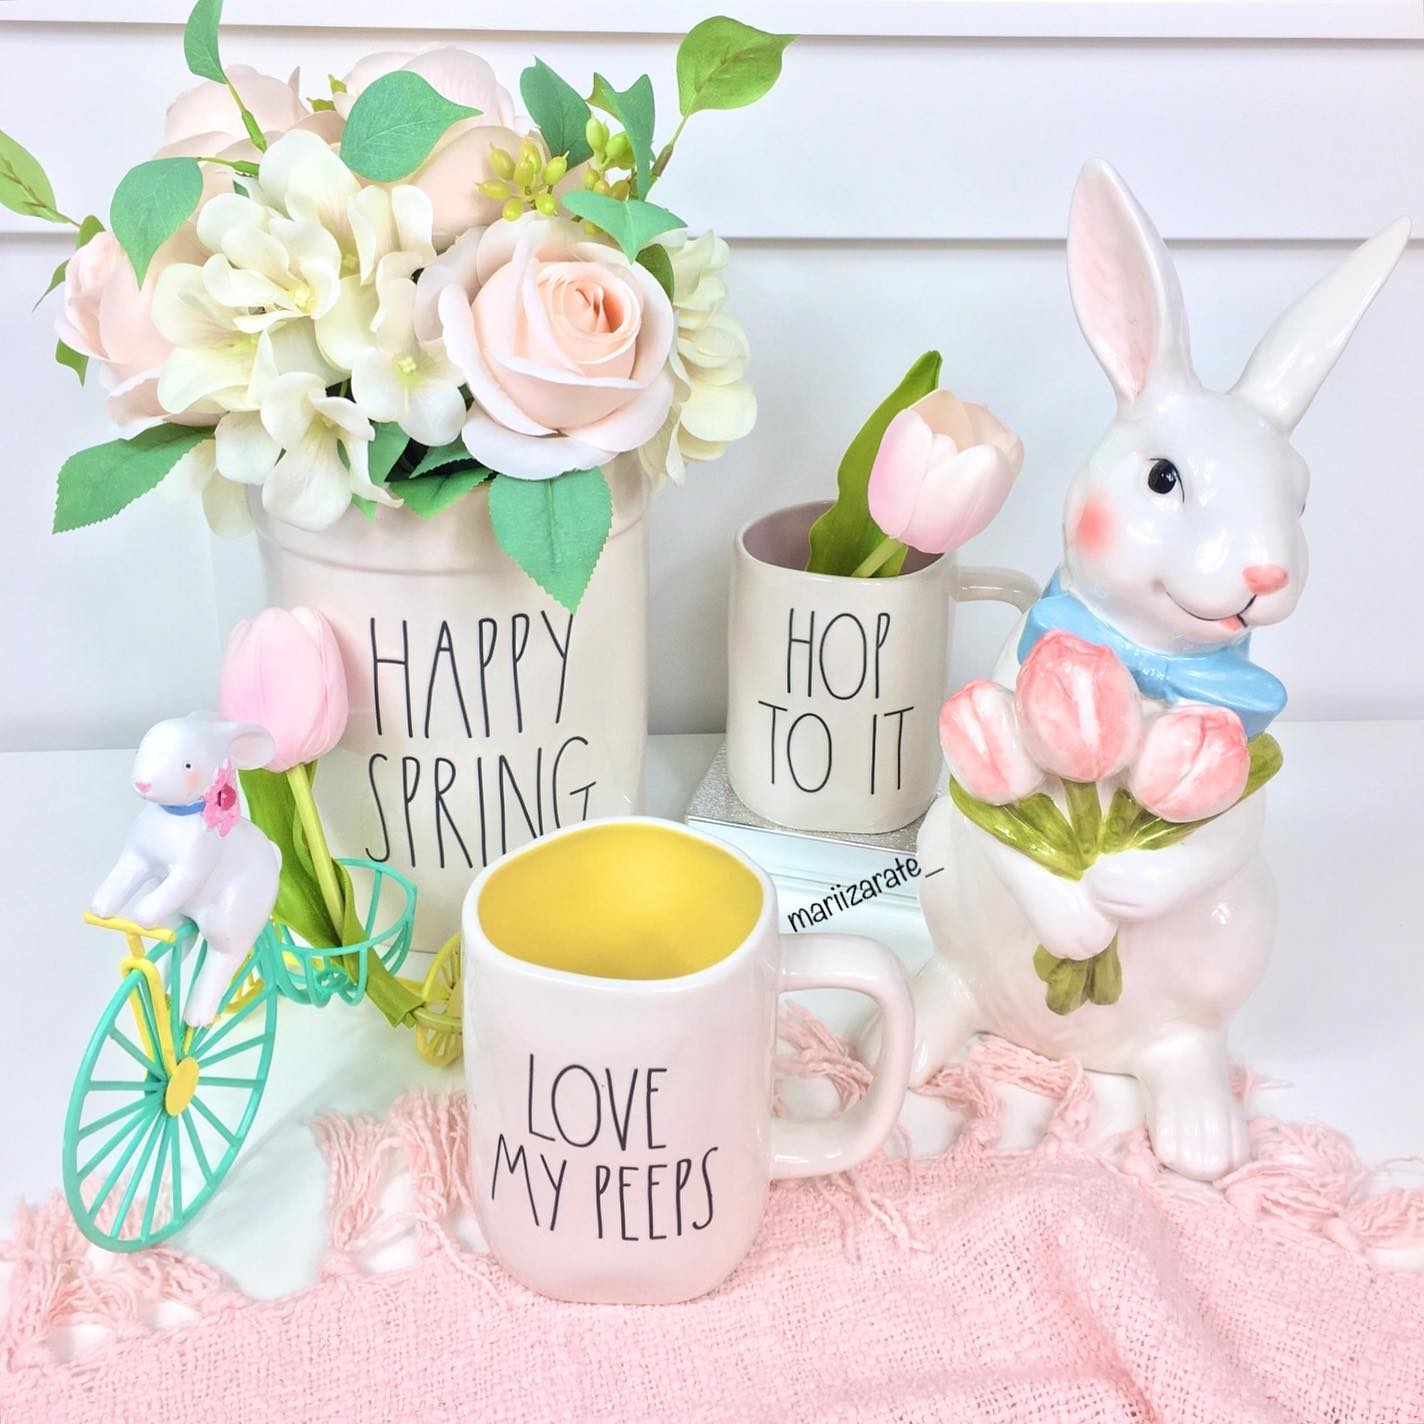 Spring inspired home decor, including a bunny statue.